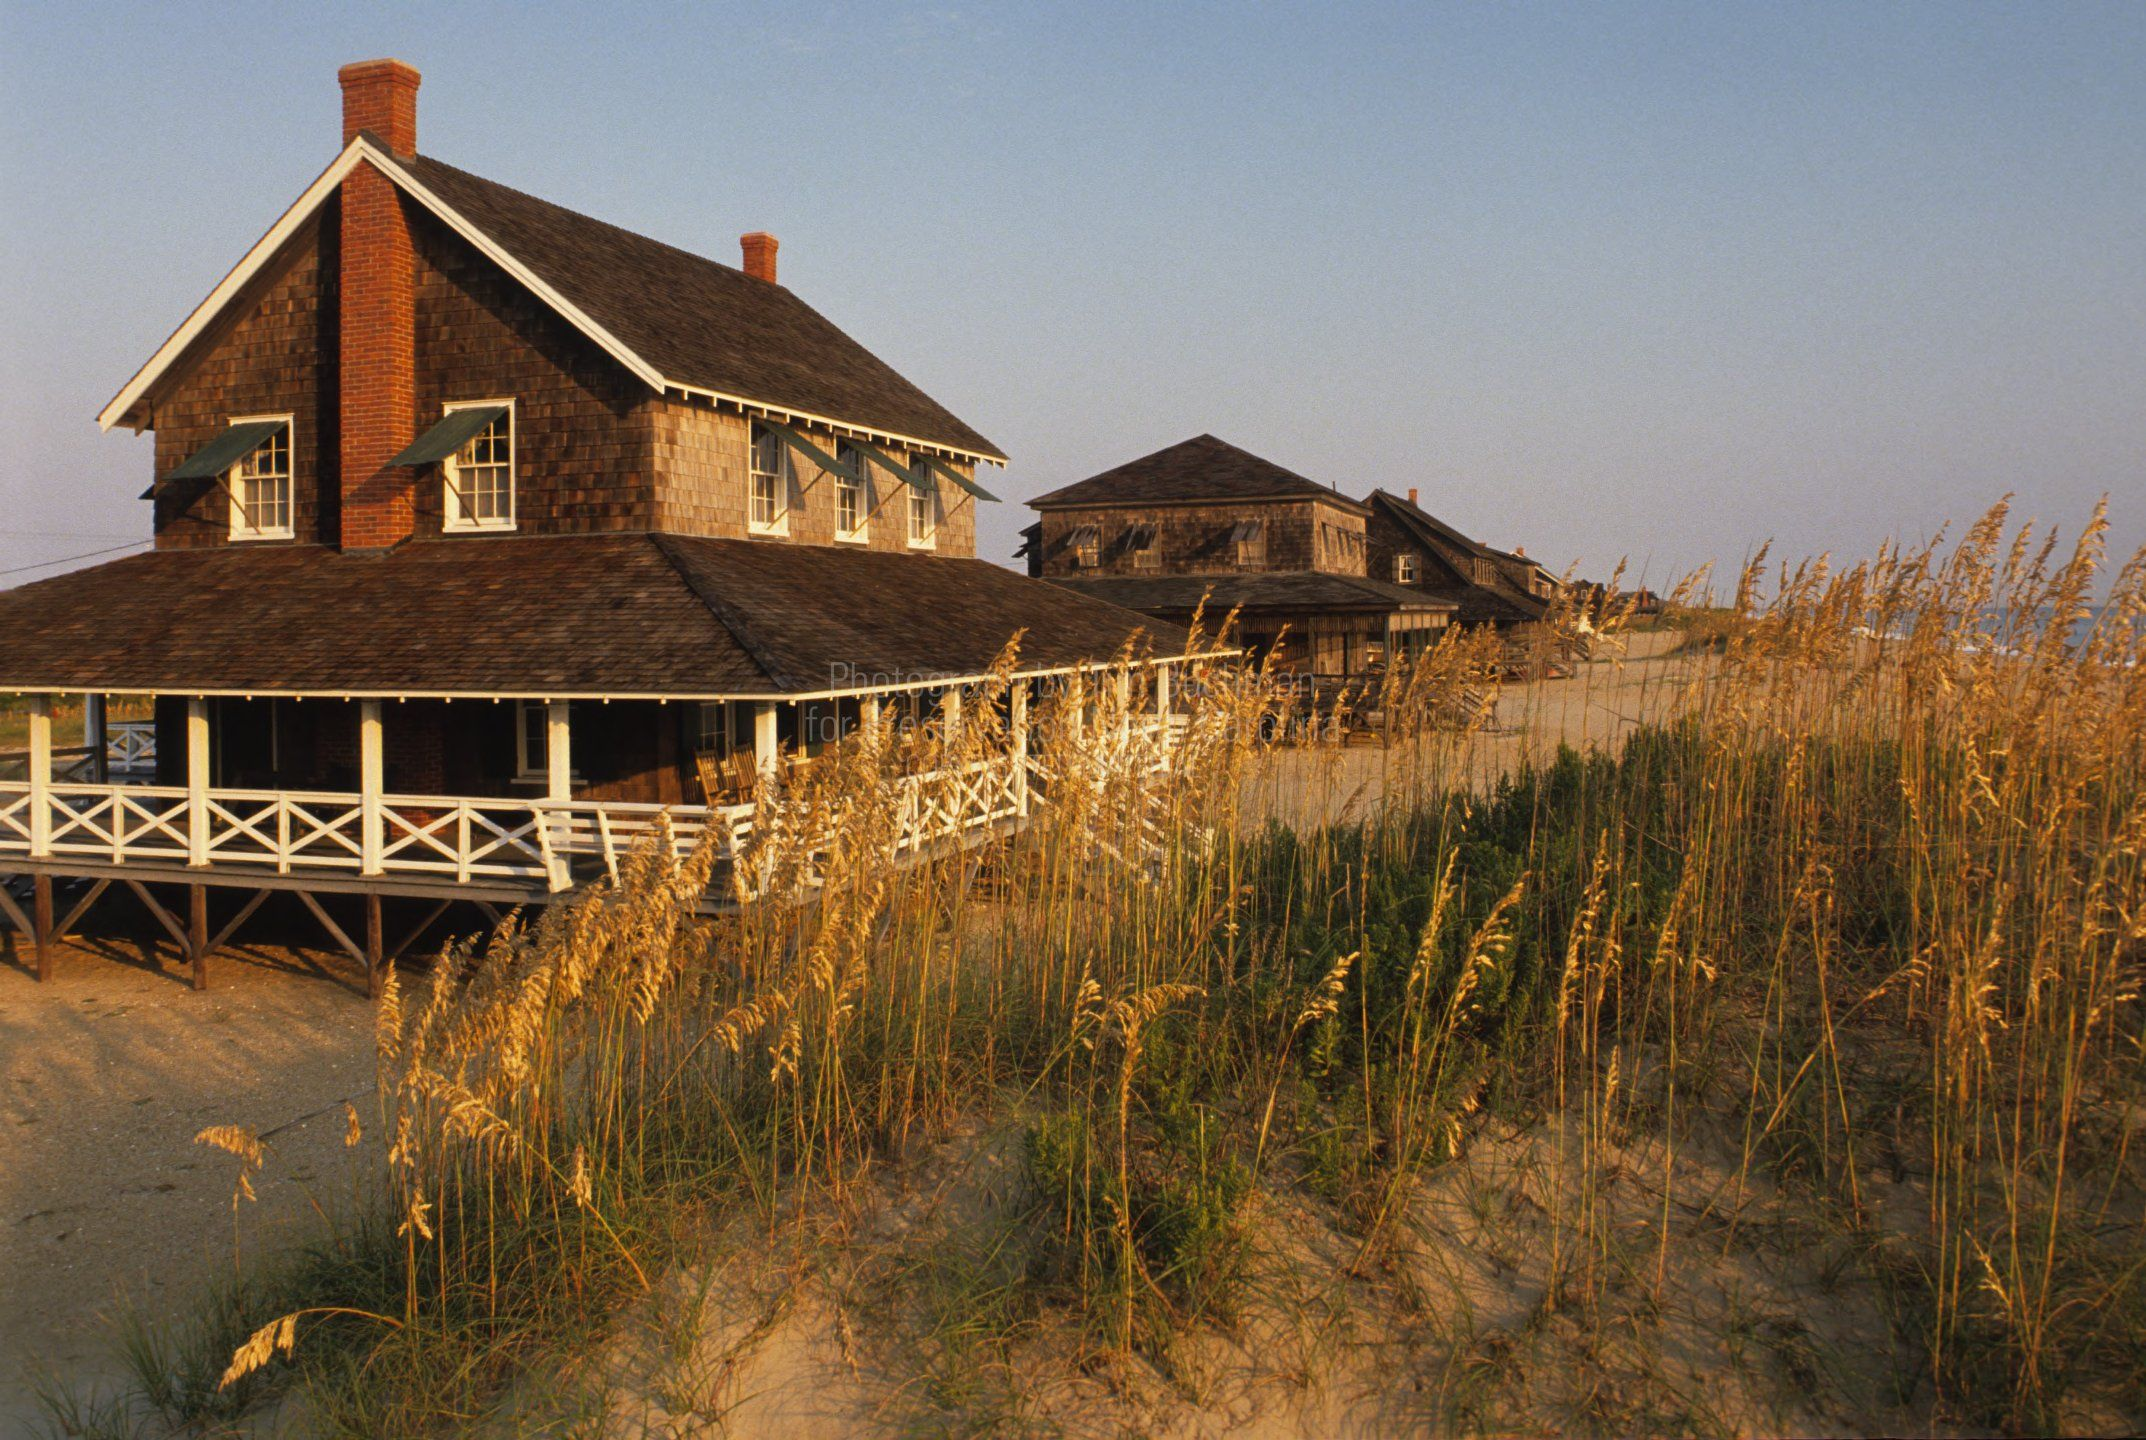 These old school Nags head beach cottages are so wonderful